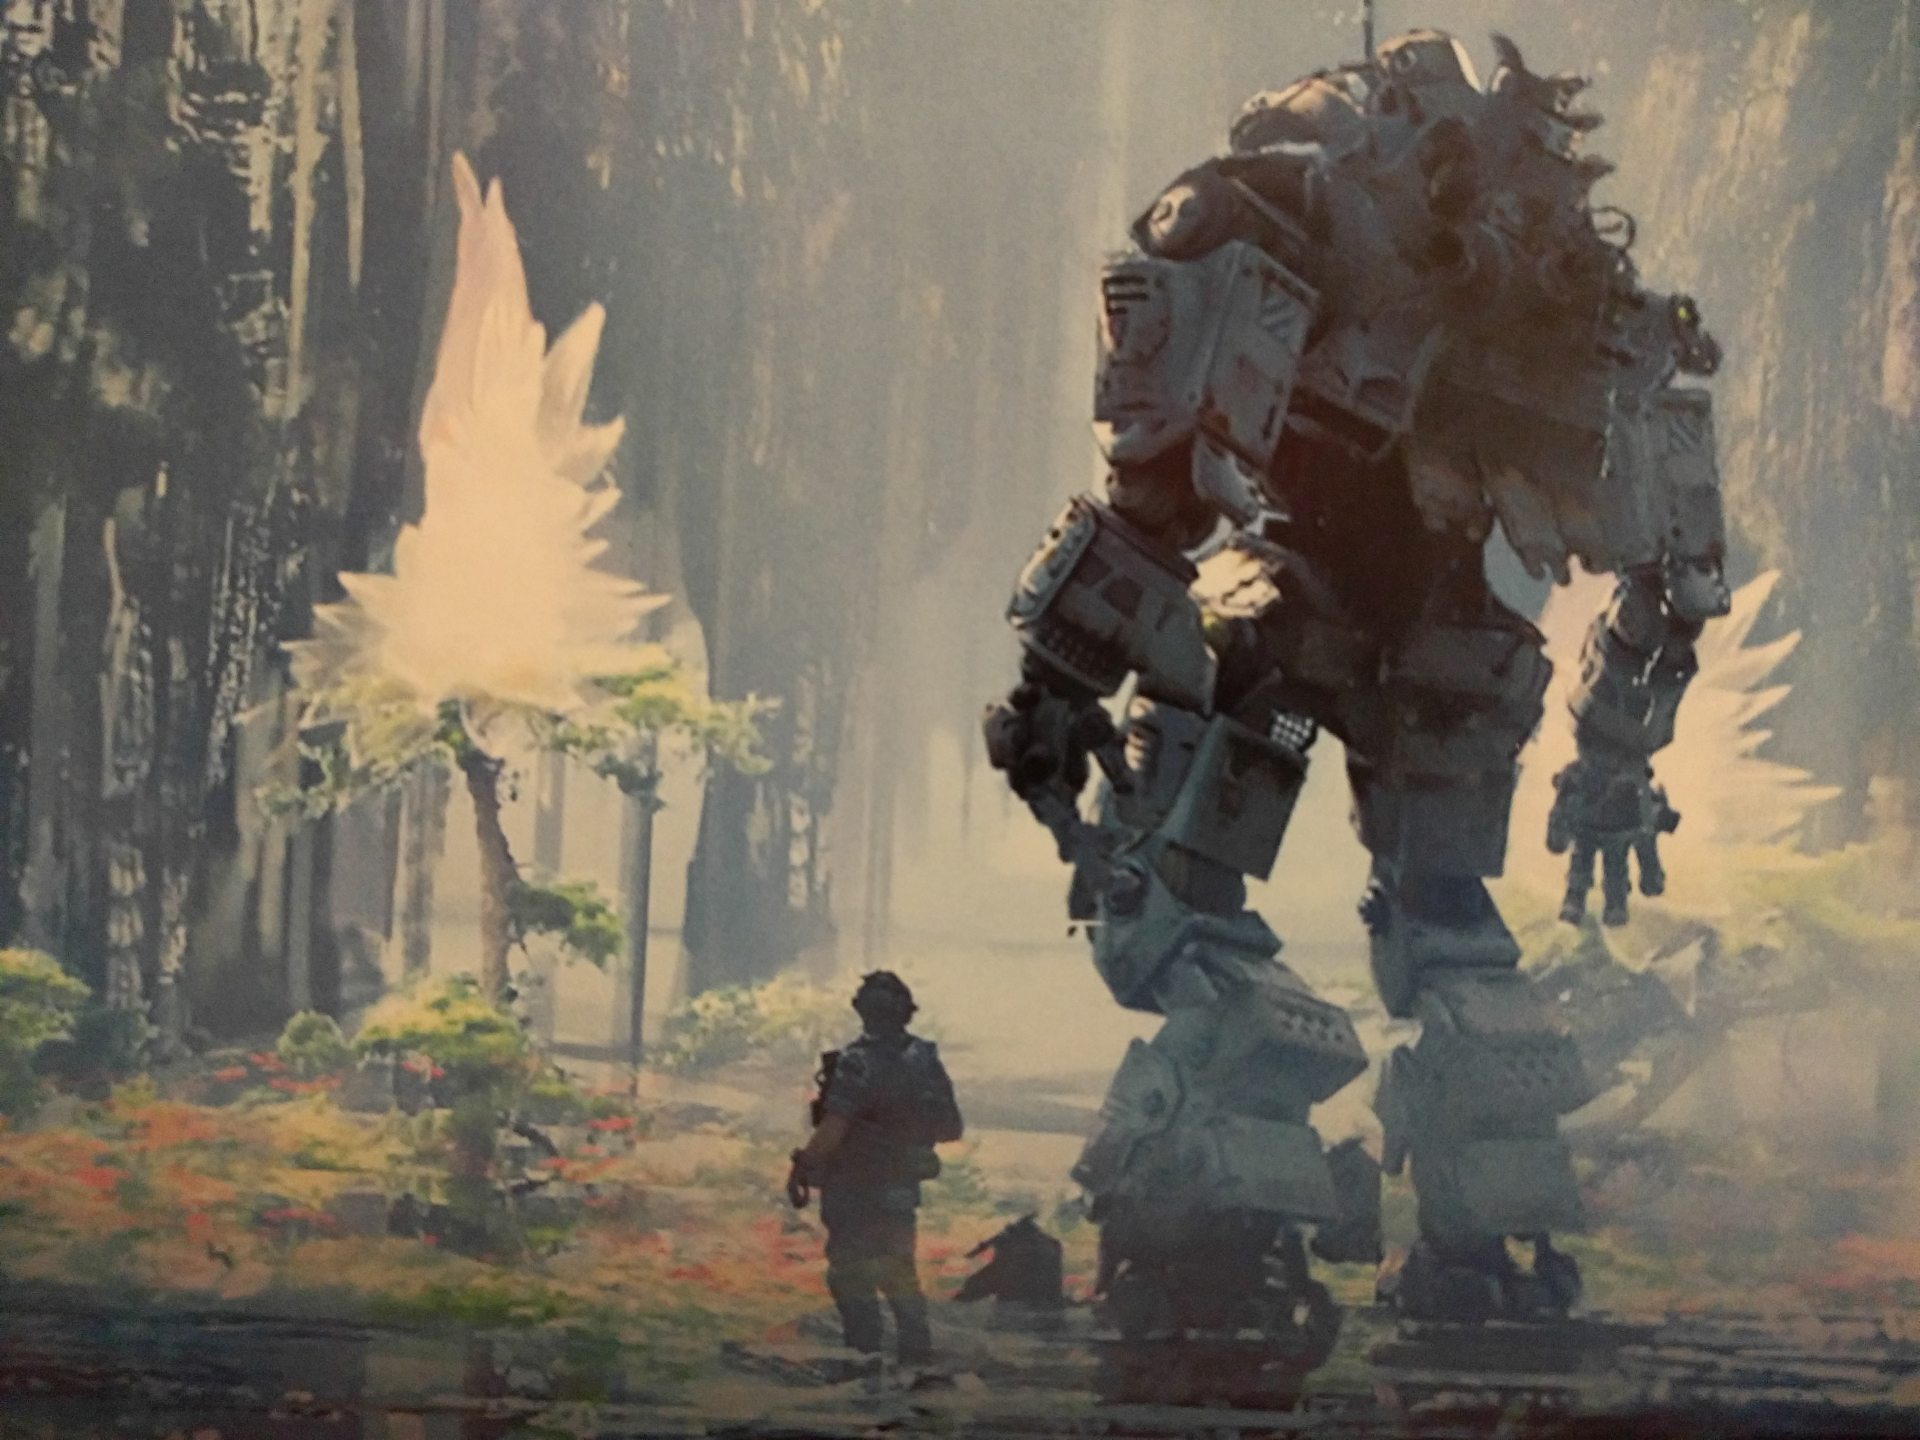 Epic Titan Fall Wallpaper Bt Stands For Best Titan The Art Of Titanfall 2 Review